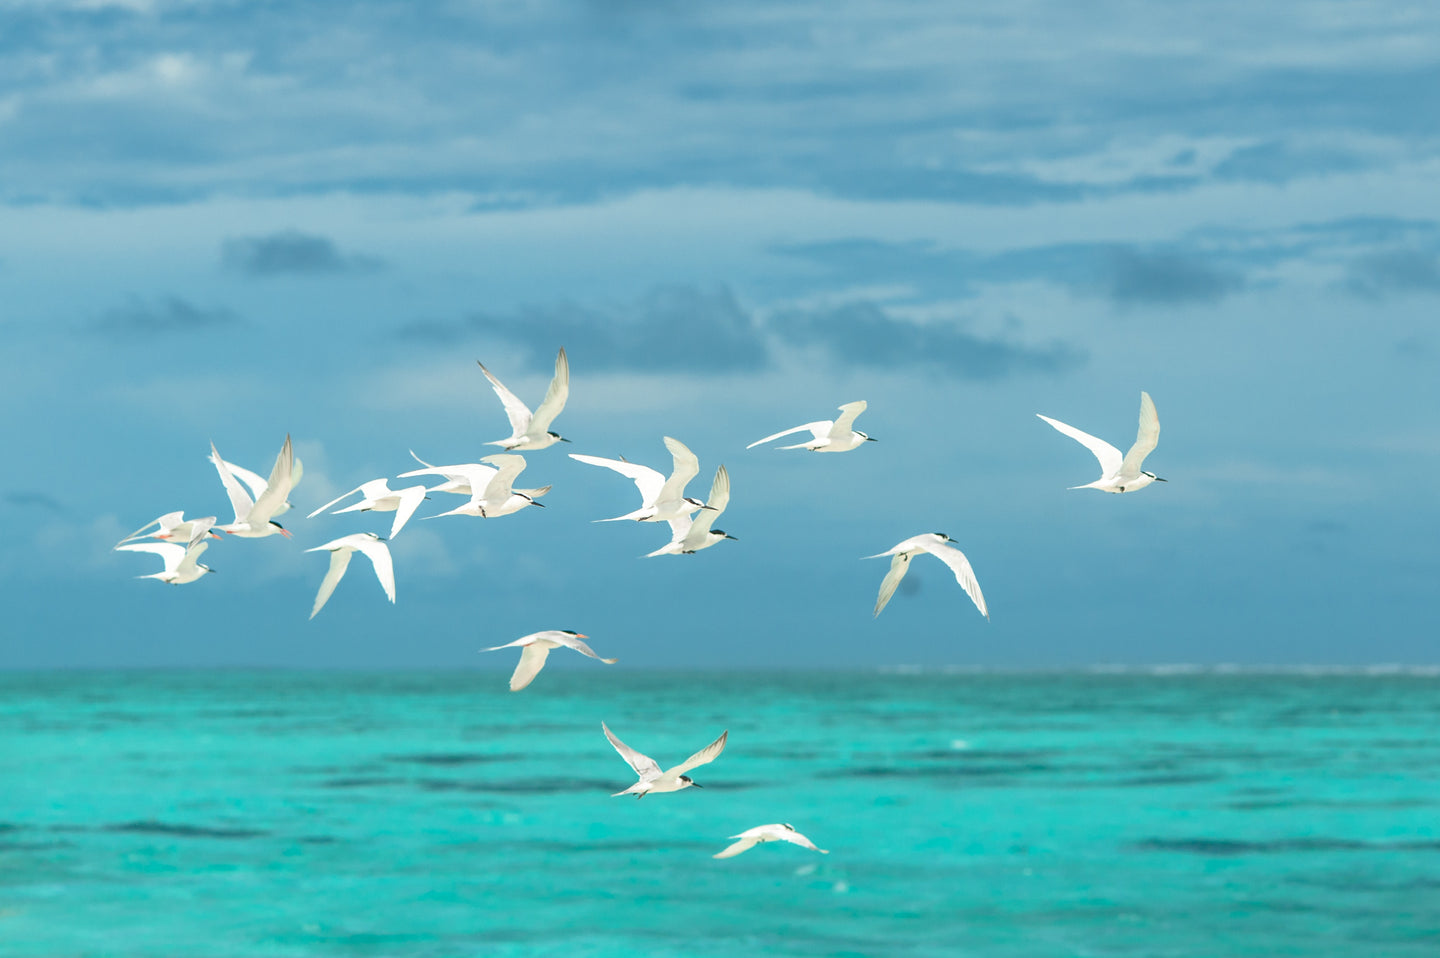 Flock of white seagulls flying over the large body of water - W-Photographie